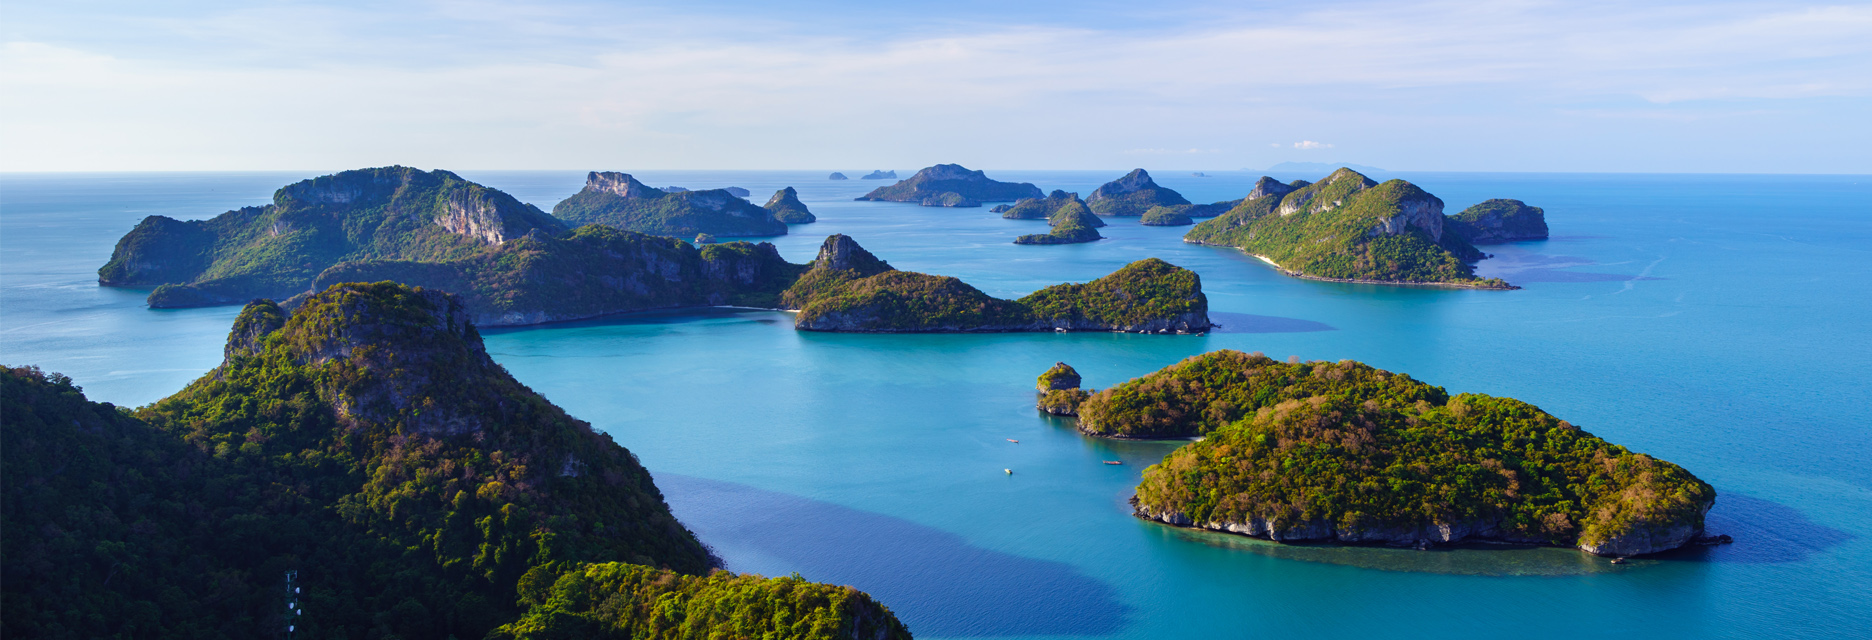 Day Tour From Koh Samui: Ang Thong National Park Image